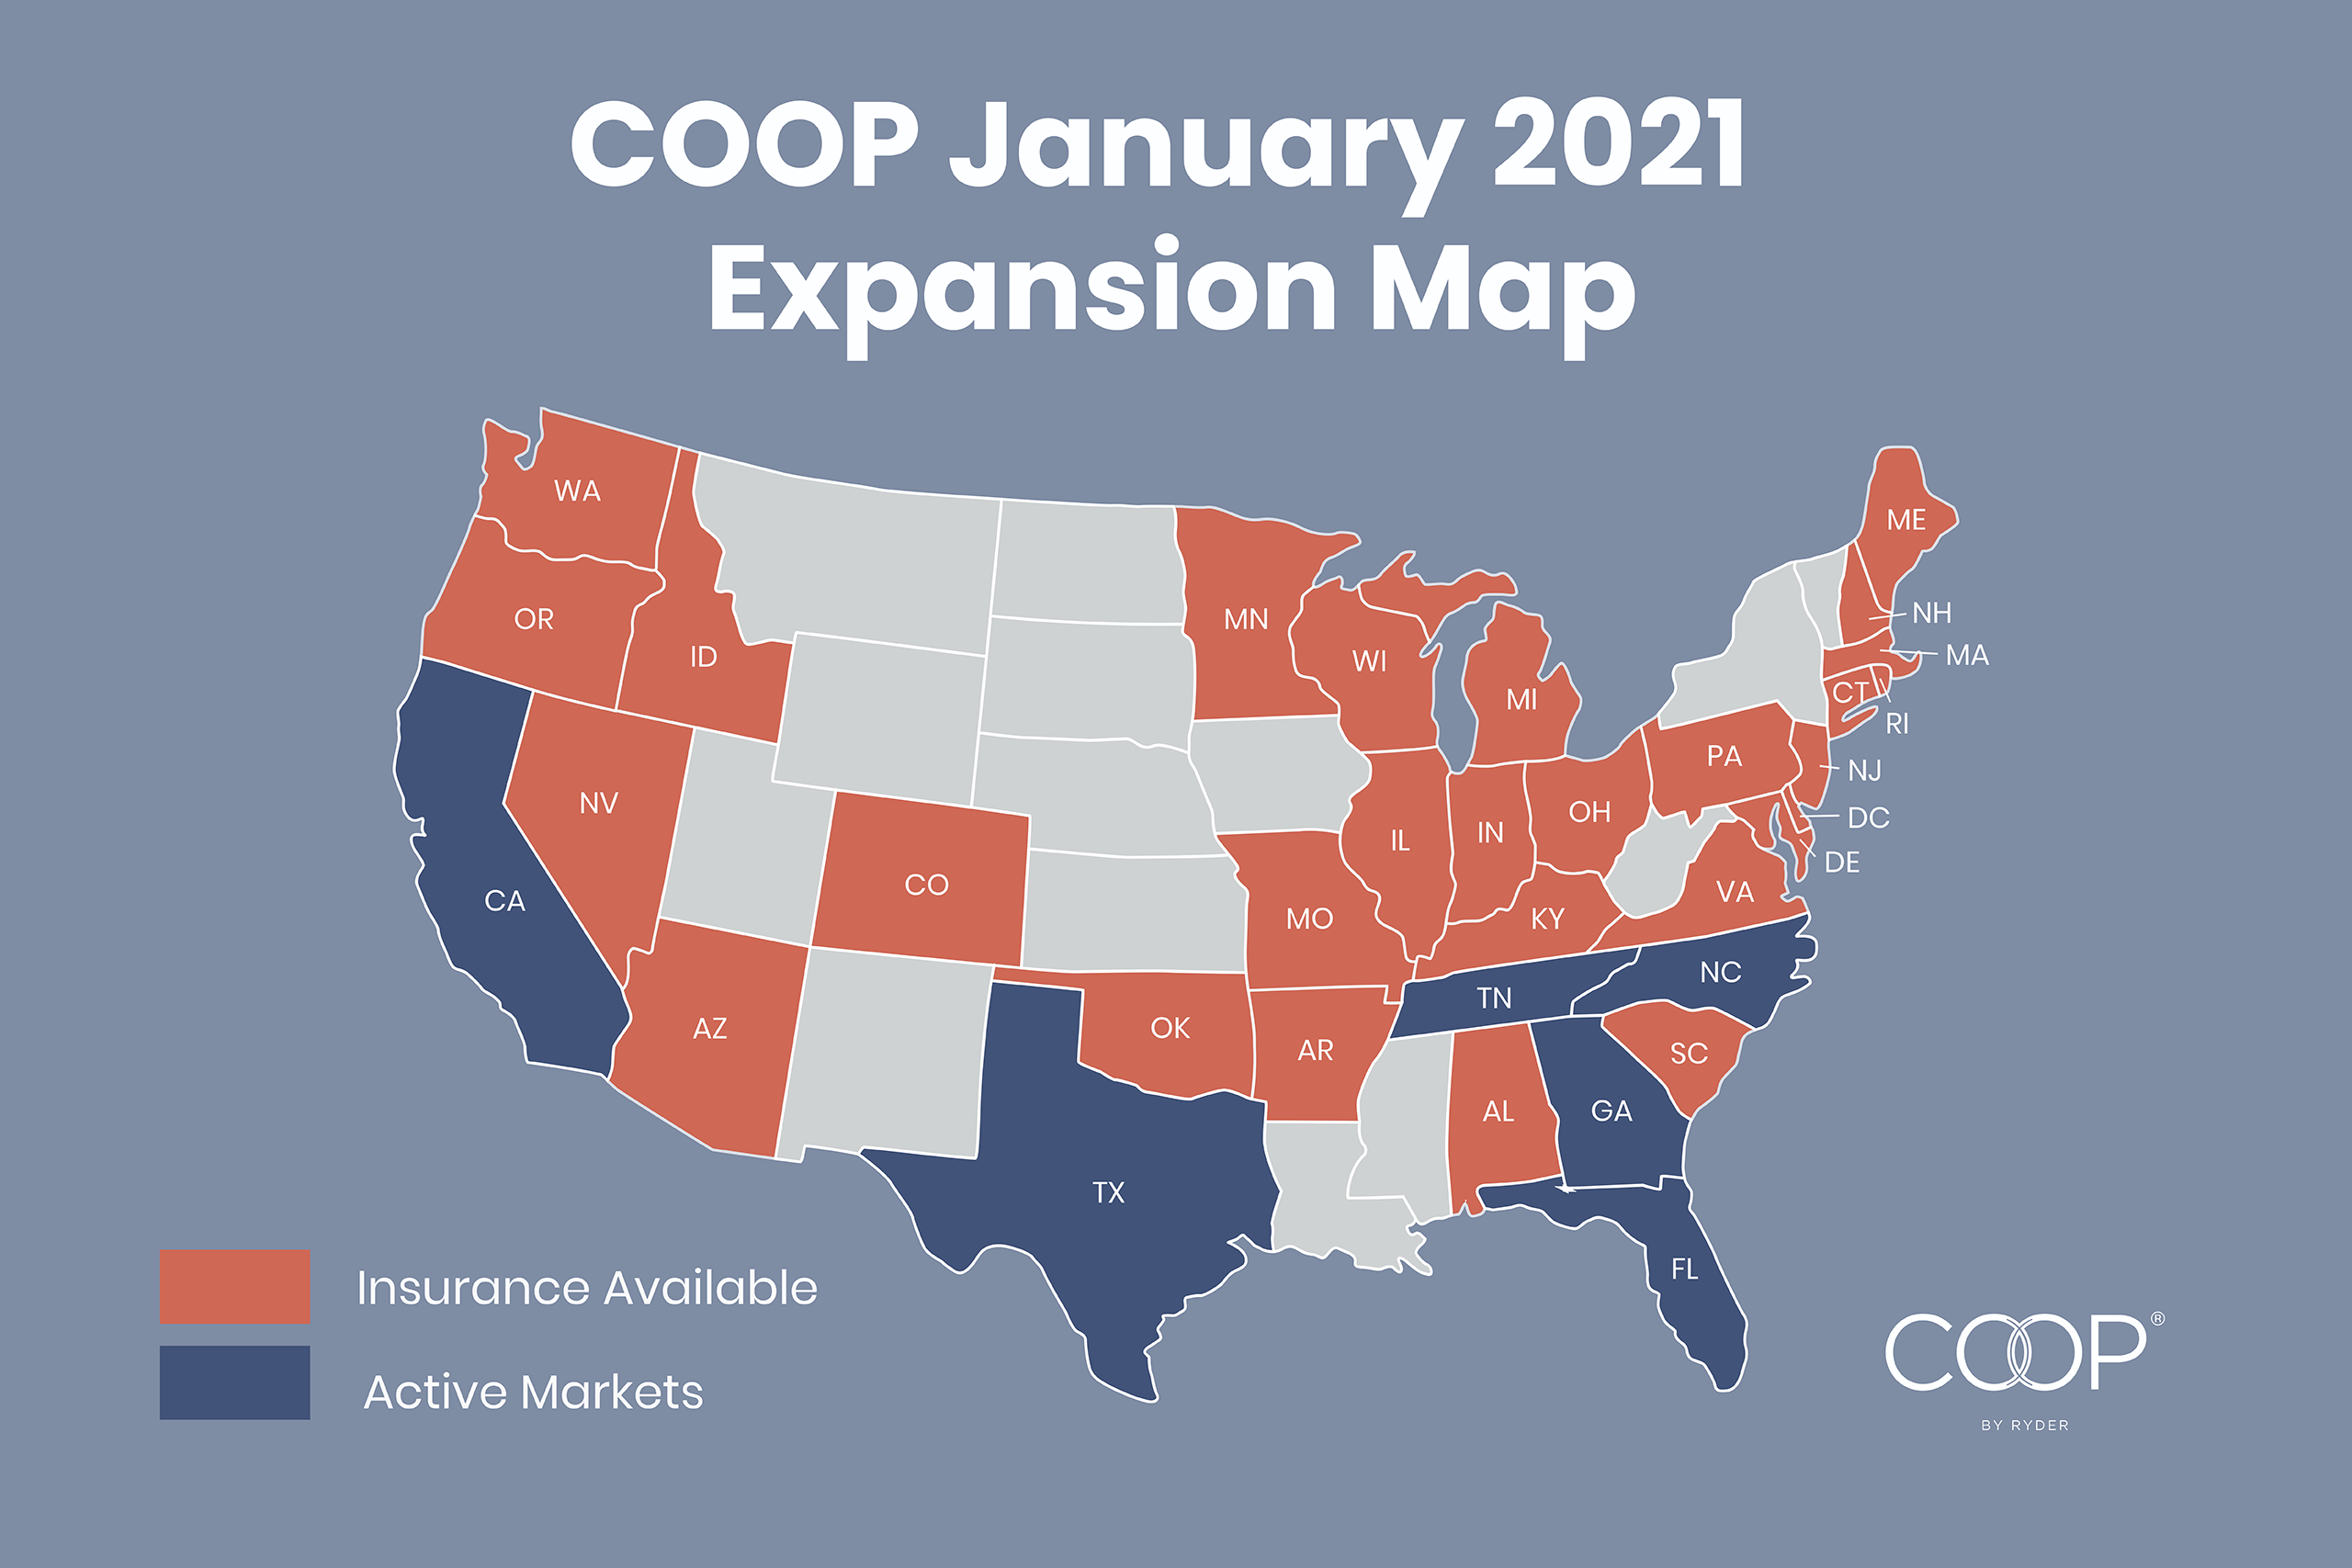 COOP January 2021 Expansion Map